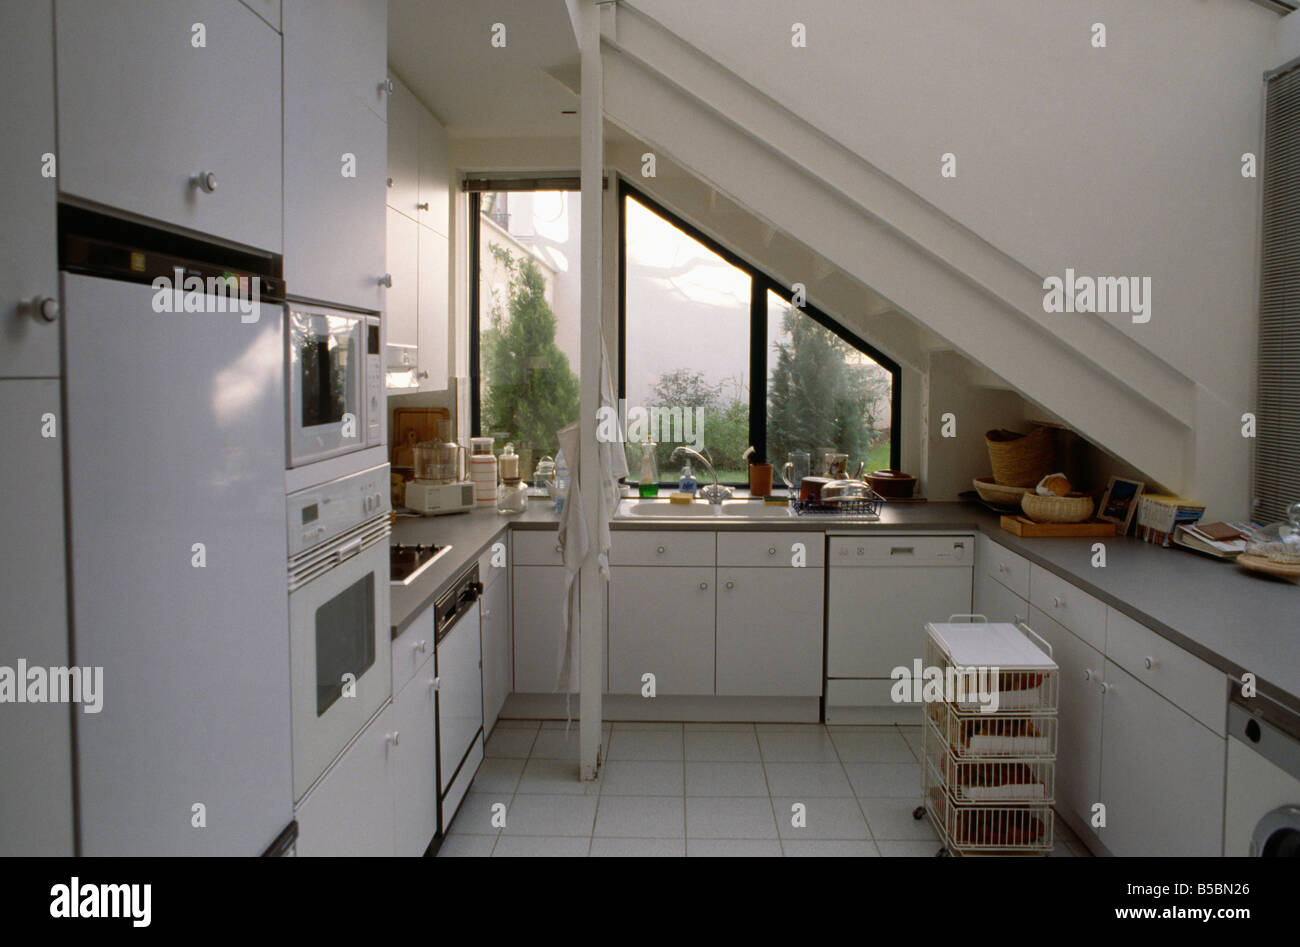 interiors kitchen stairs white stock photos & interiors kitchen